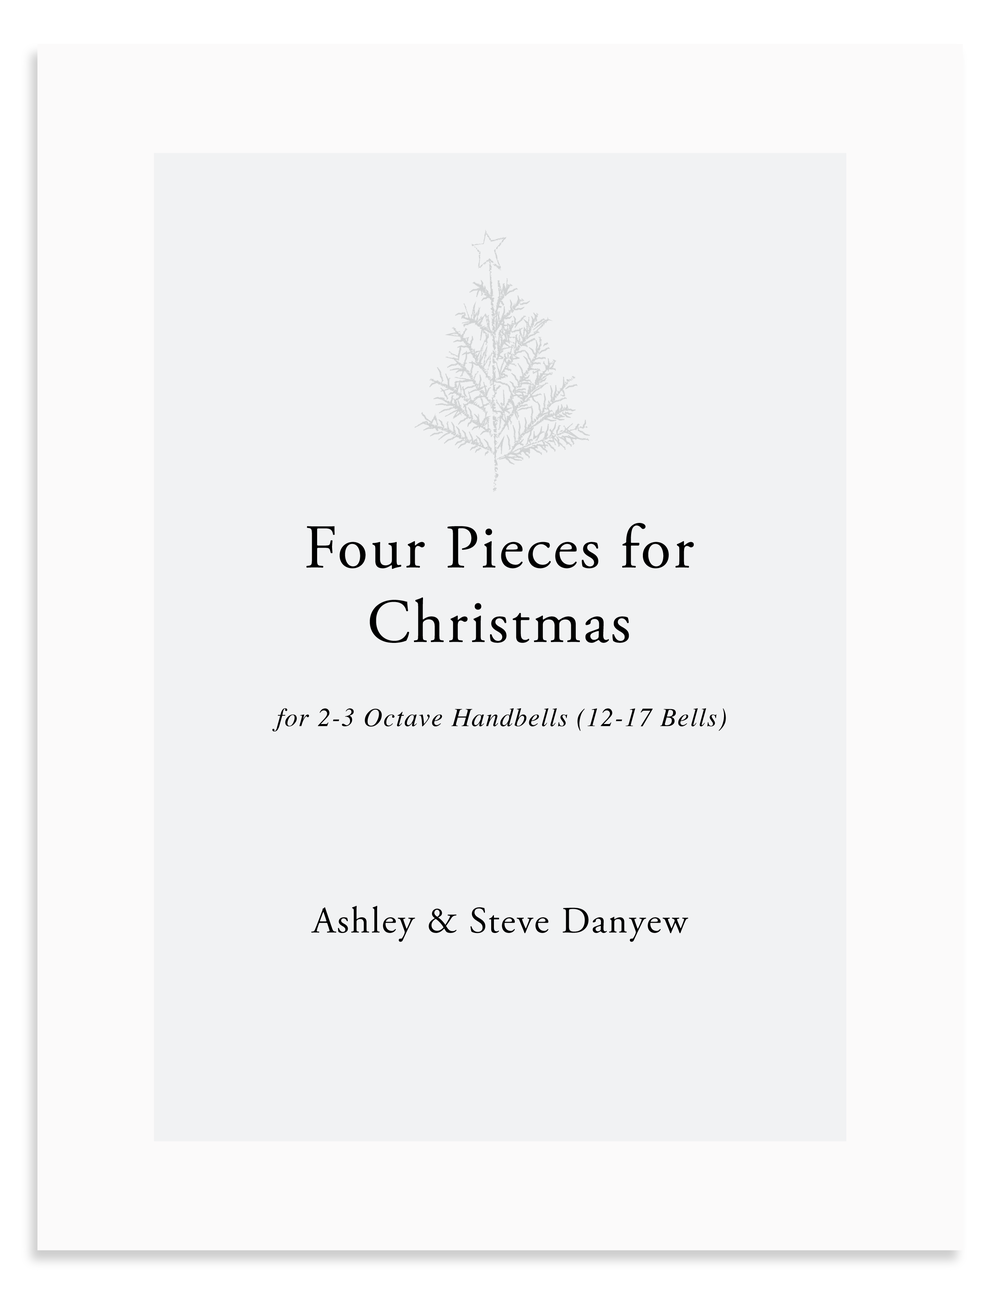 Four Pieces for Christmas: A New Handbell Collection for 2-3 Octave Handbells (12-17 Bells)